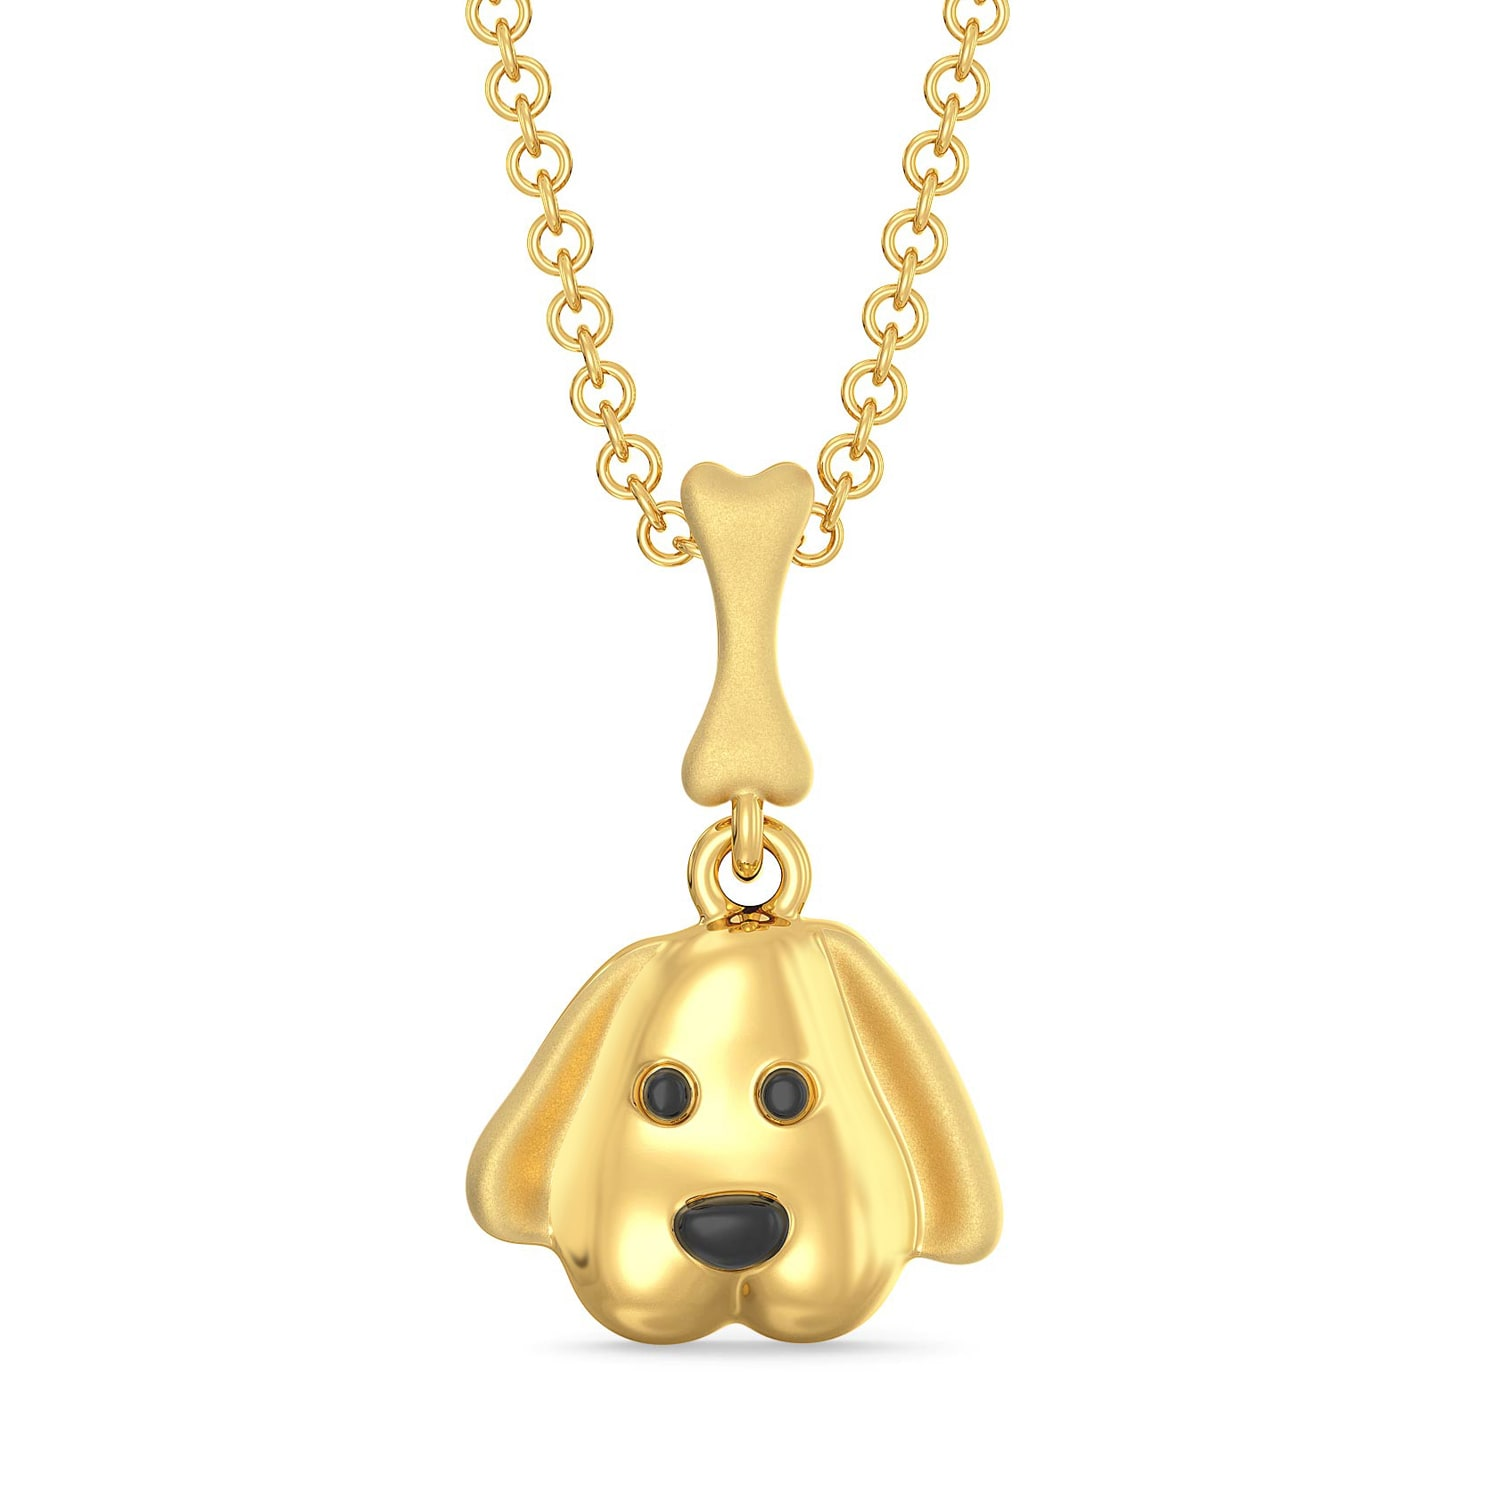 Bow Wow Gold Pendants